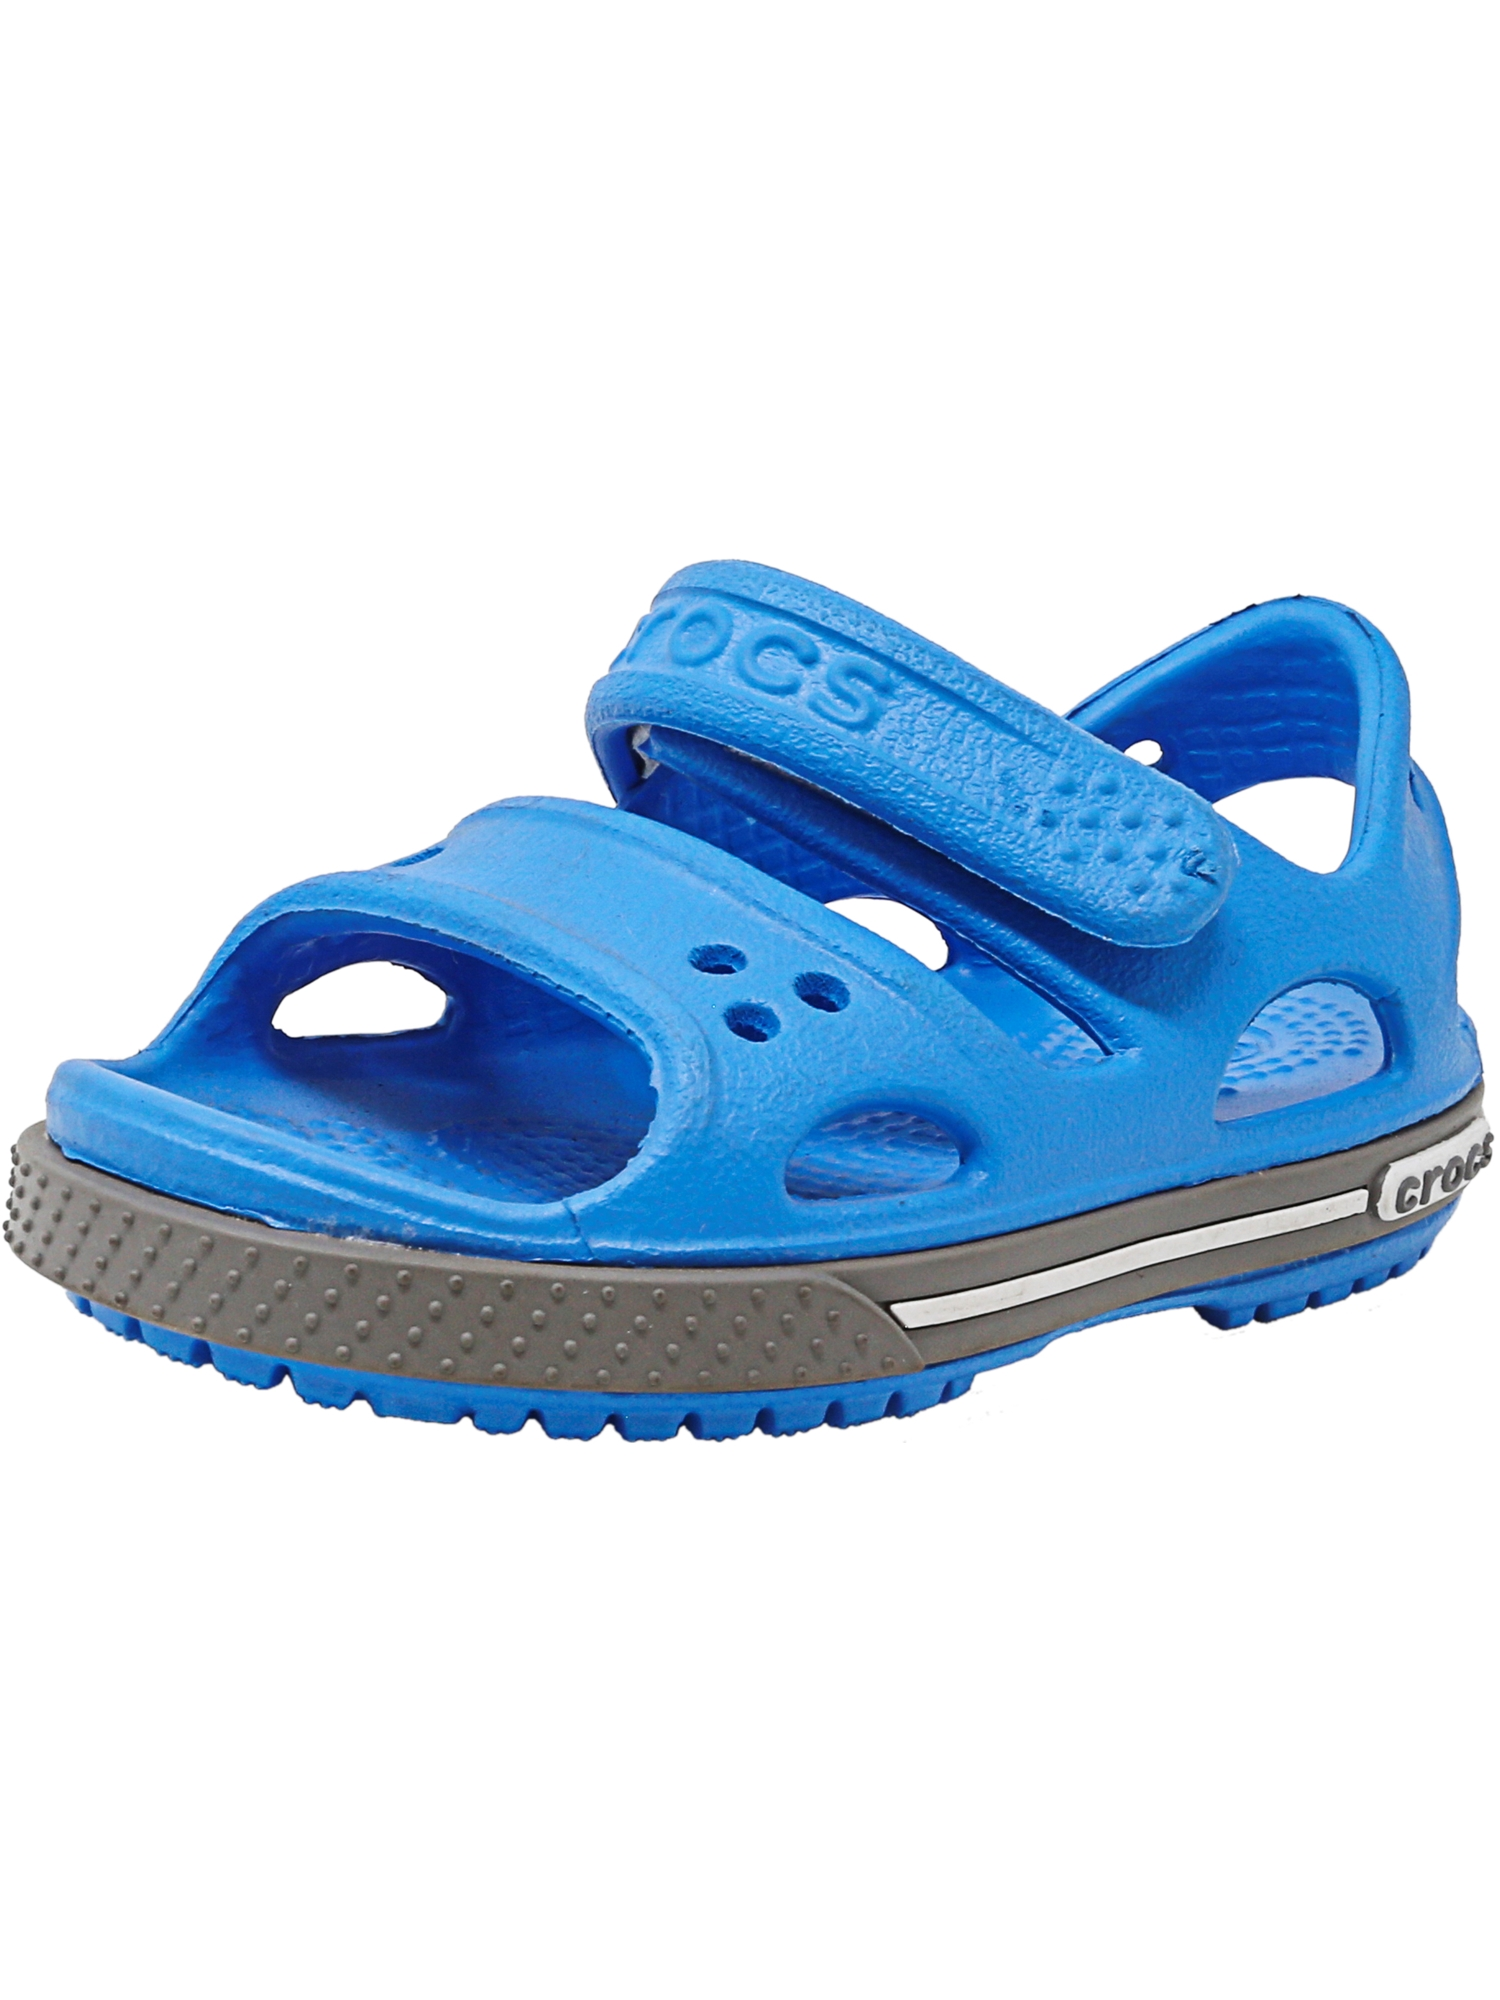 Crocs Crocband Ii Sandal Ocean   Smoke Ankle-High 13M by Crocs